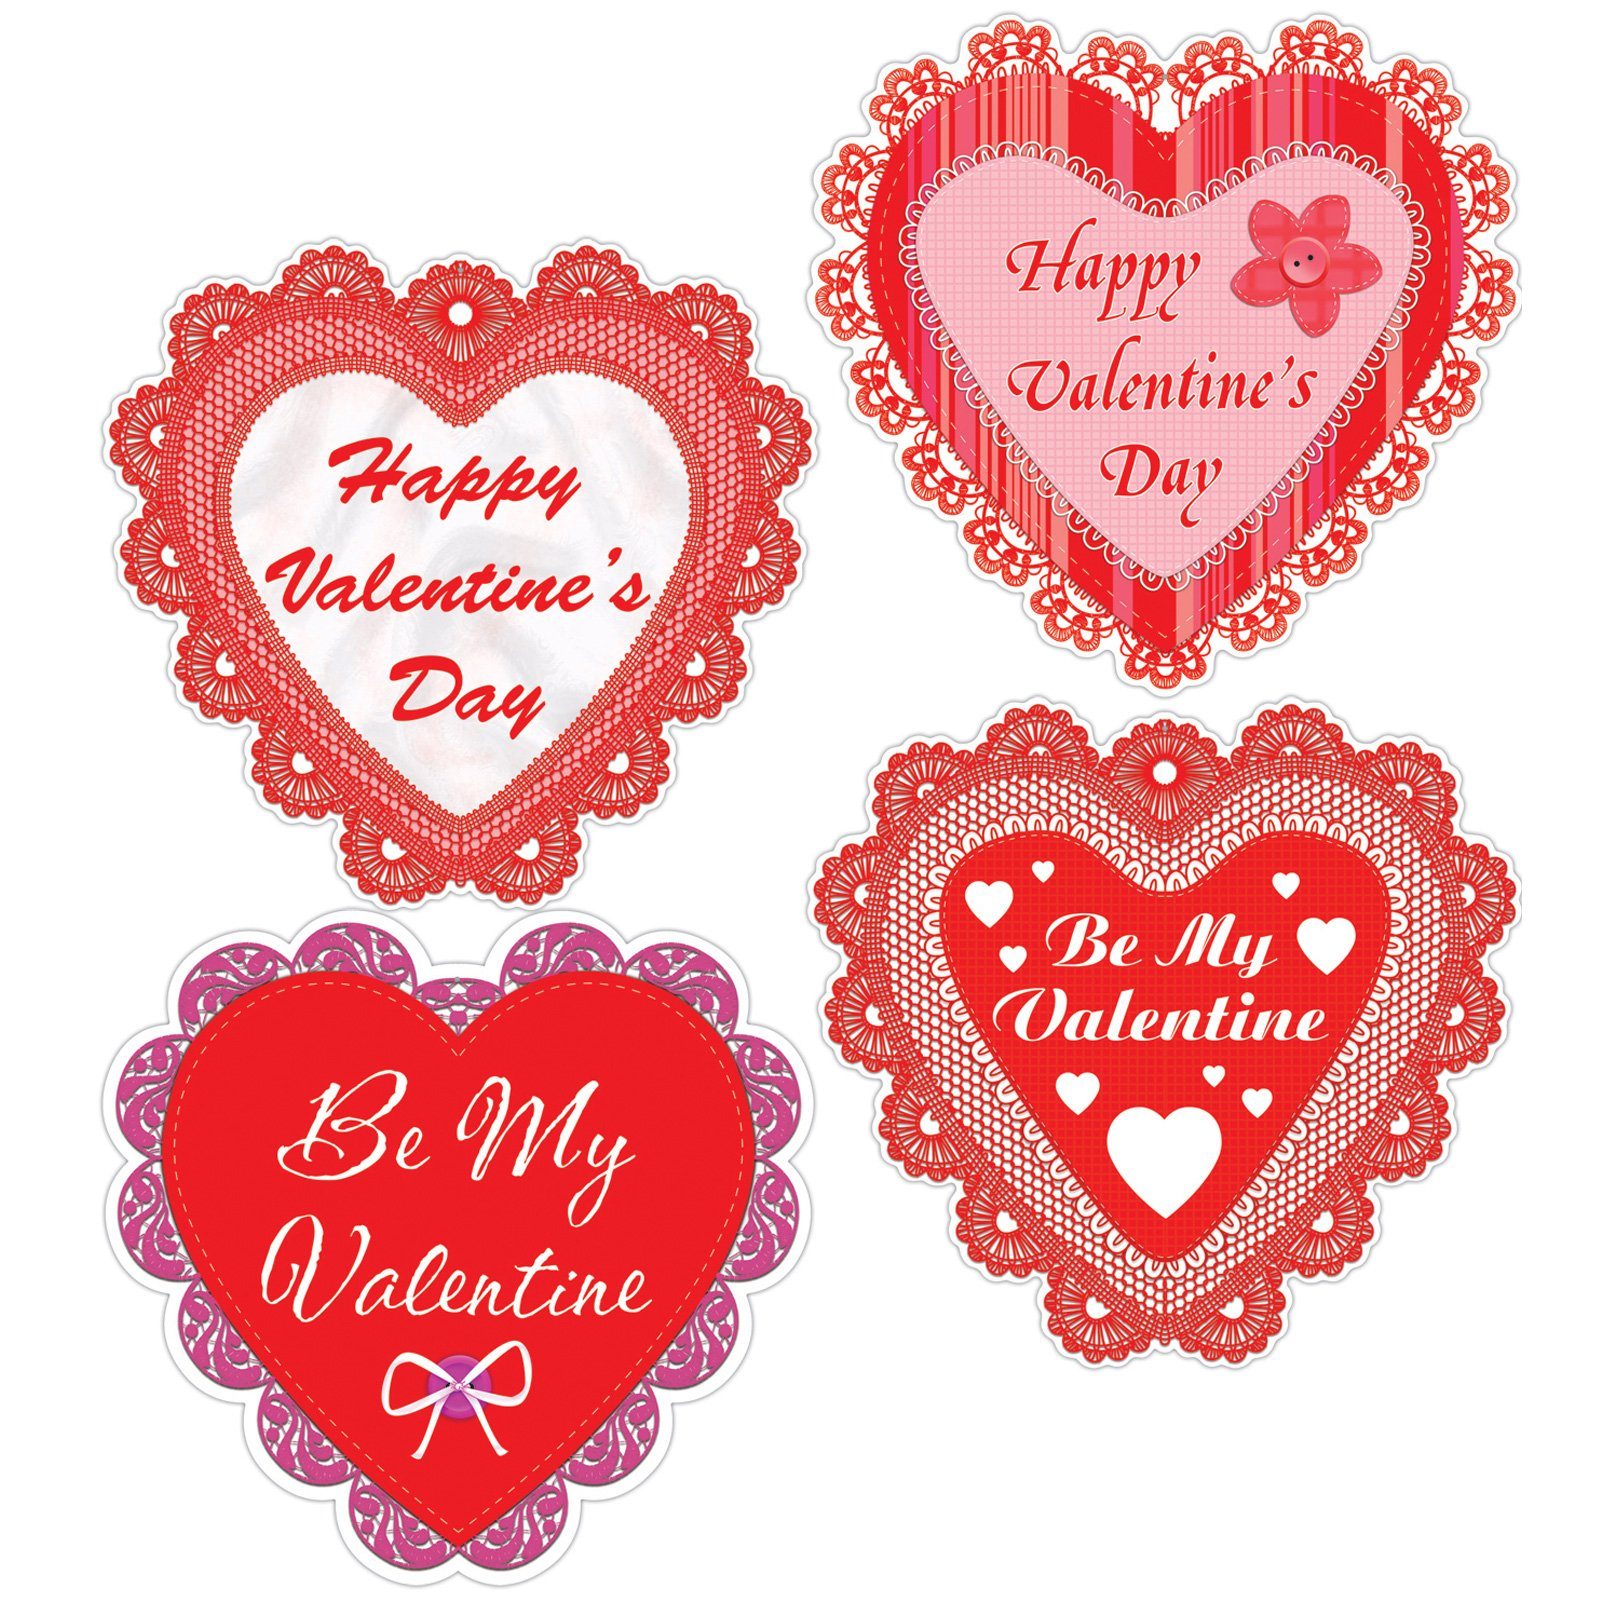 Happy Valentine S Day Lace Hearts Cutouts   4 Count